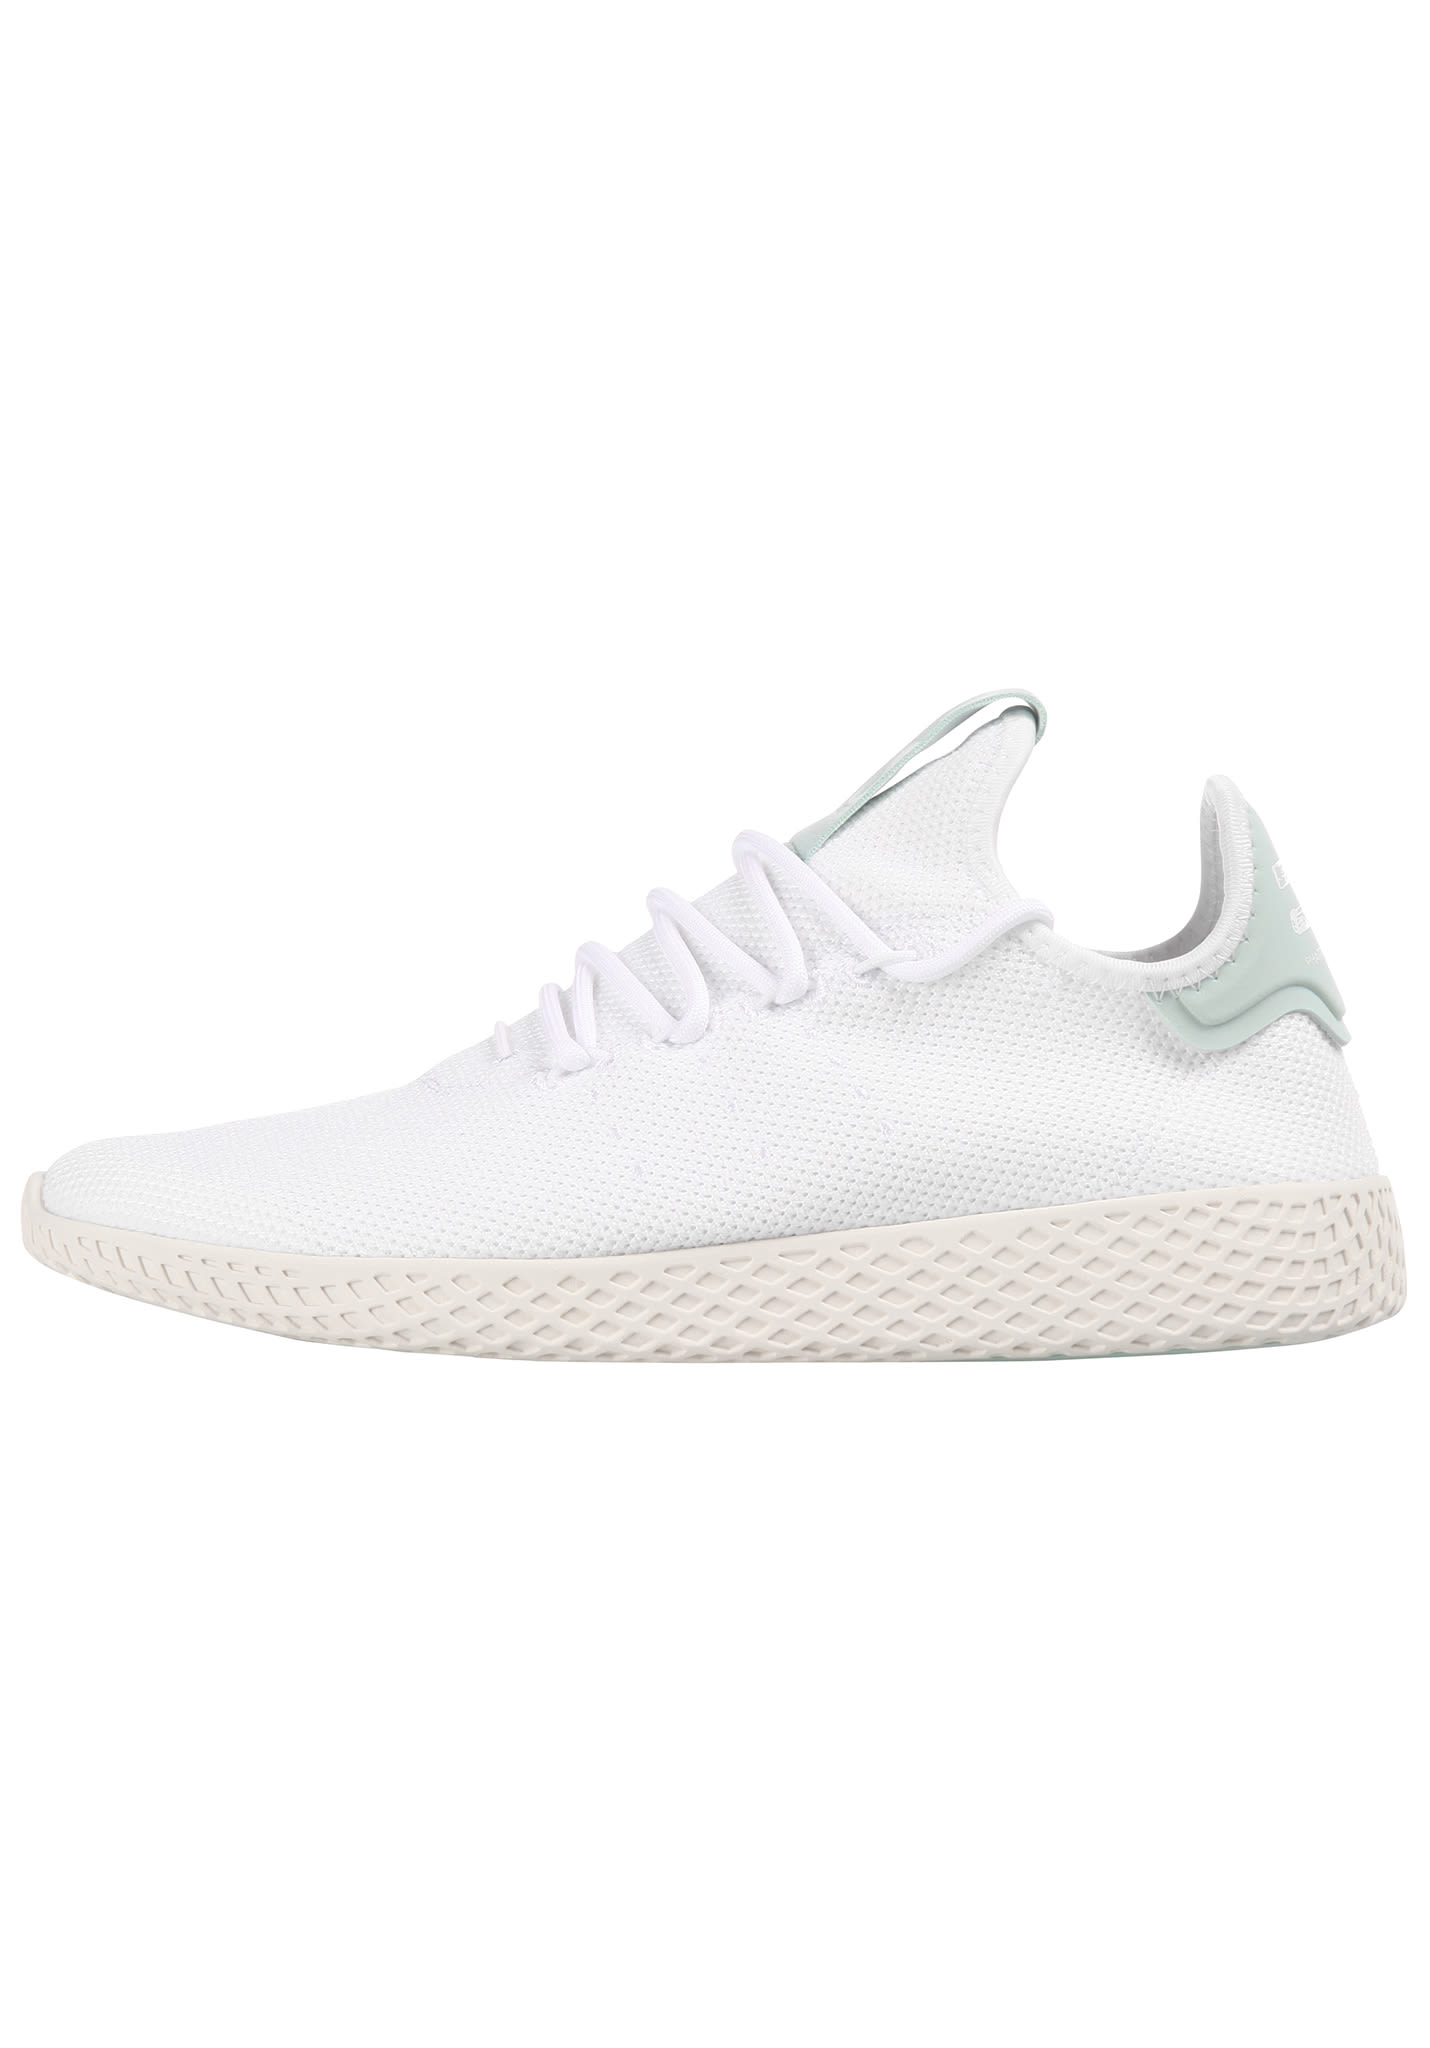 9abd2fb18 ADIDAS ORIGINALS Pharrell Williams Tennis Hu - Sneakers for Men - White -  Planet Sports